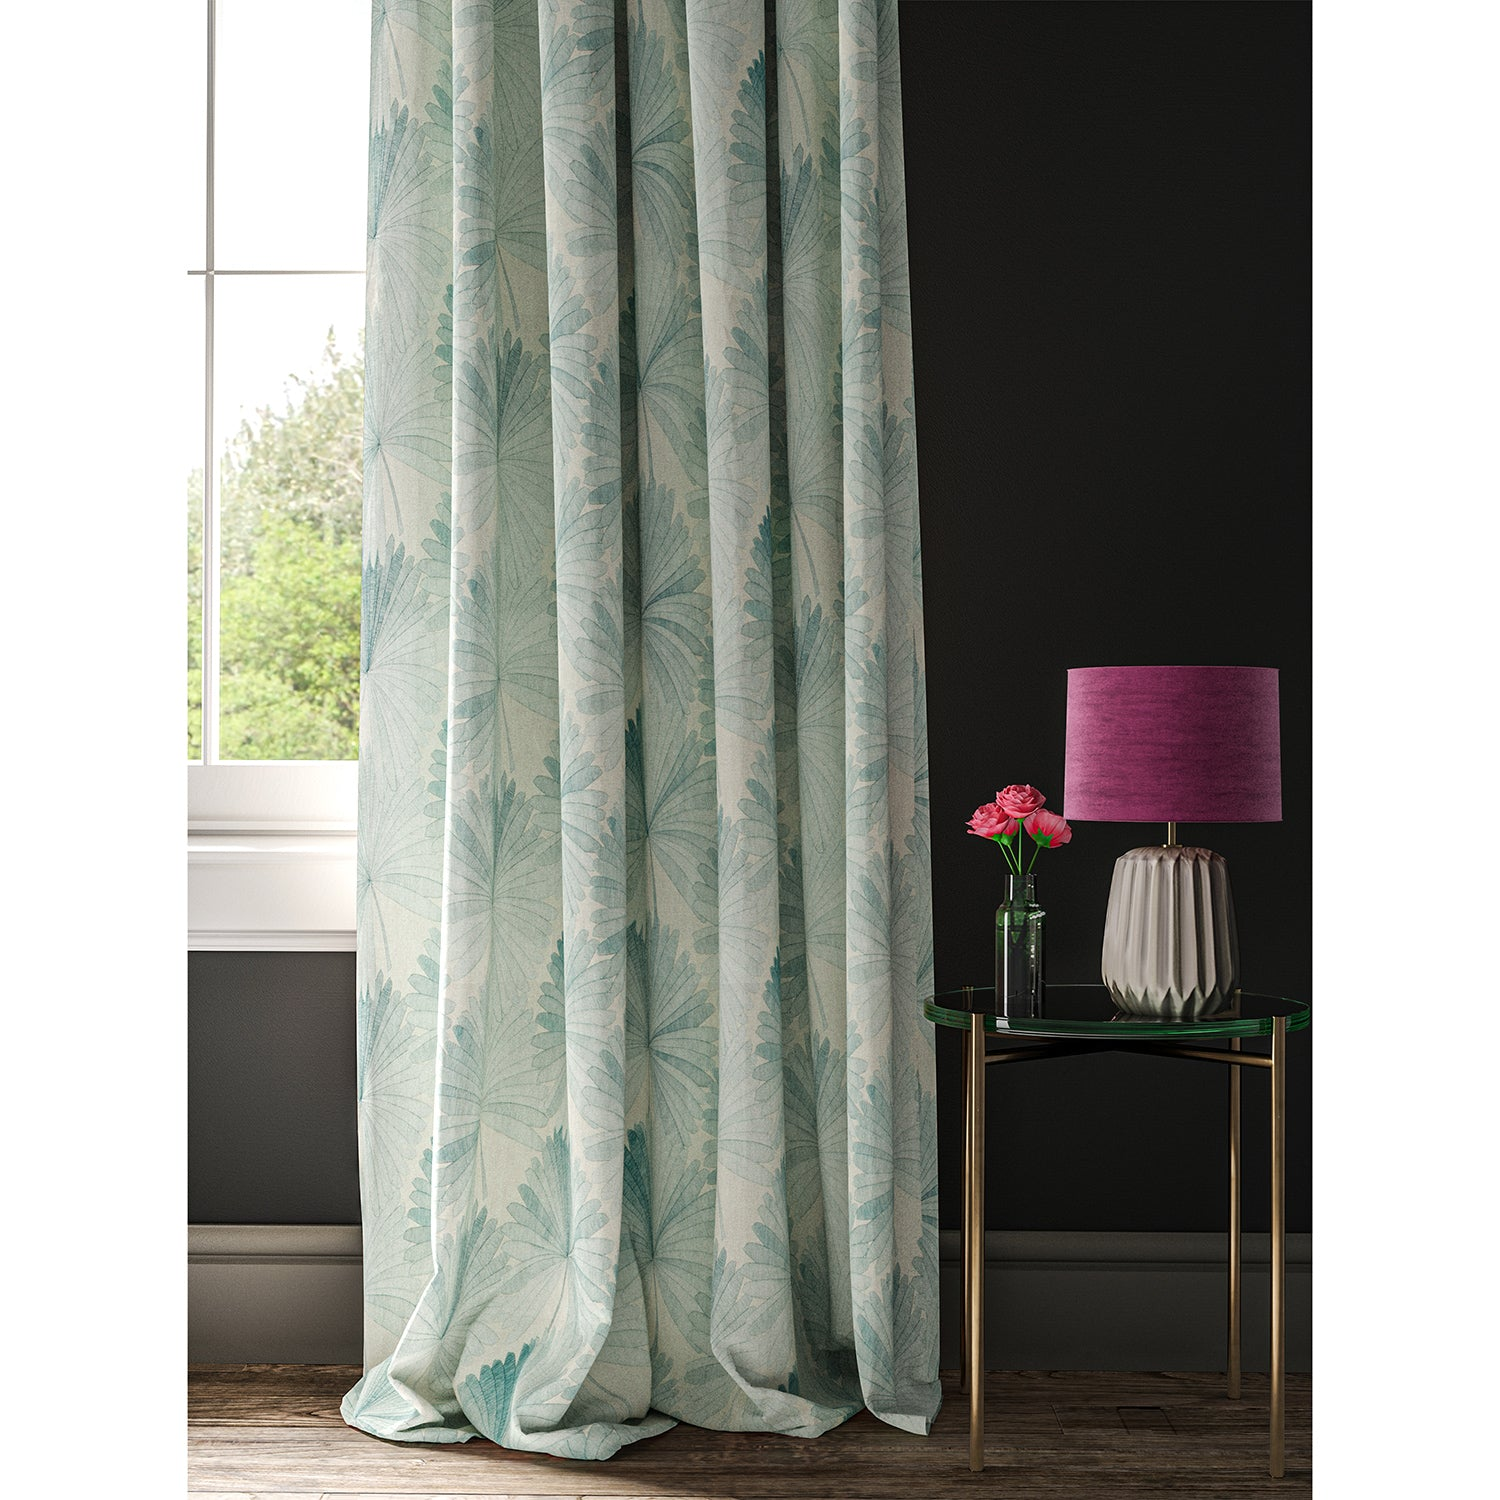 White curtain with a light blue fan design